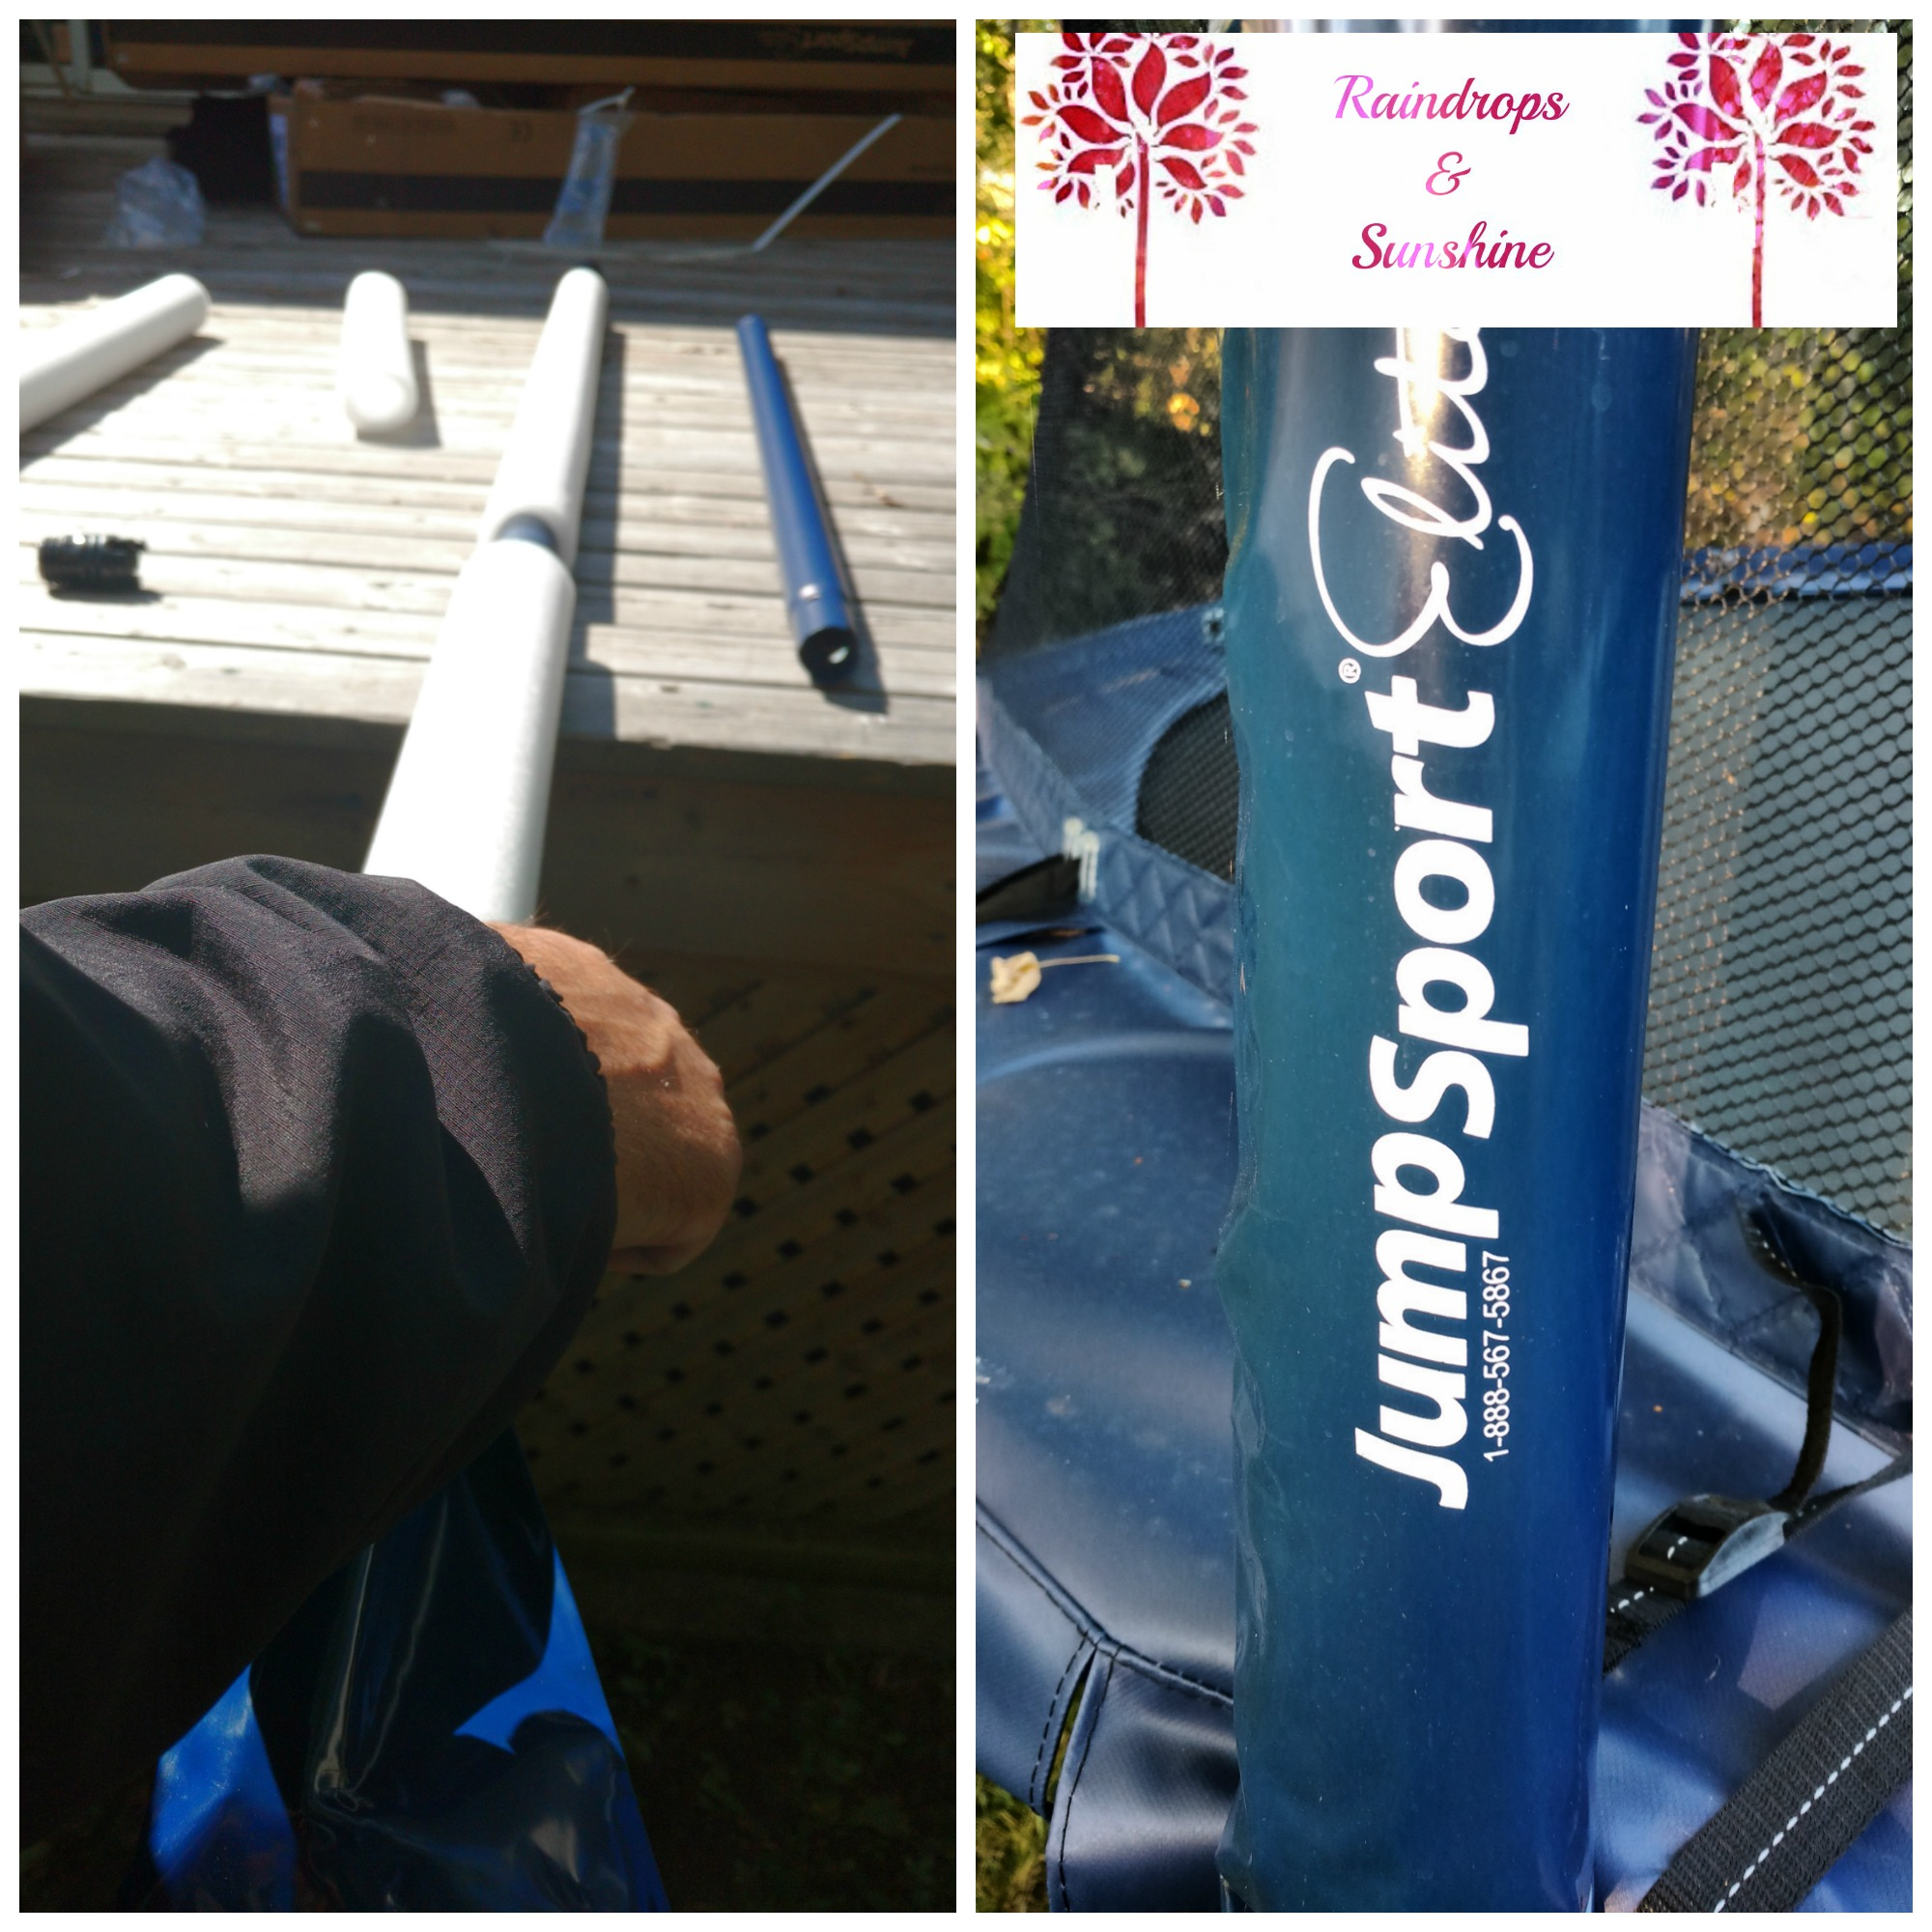 Jumpsport Trampoline Parts: Keep Your Family Active With A JumpSport Elite Trampoline